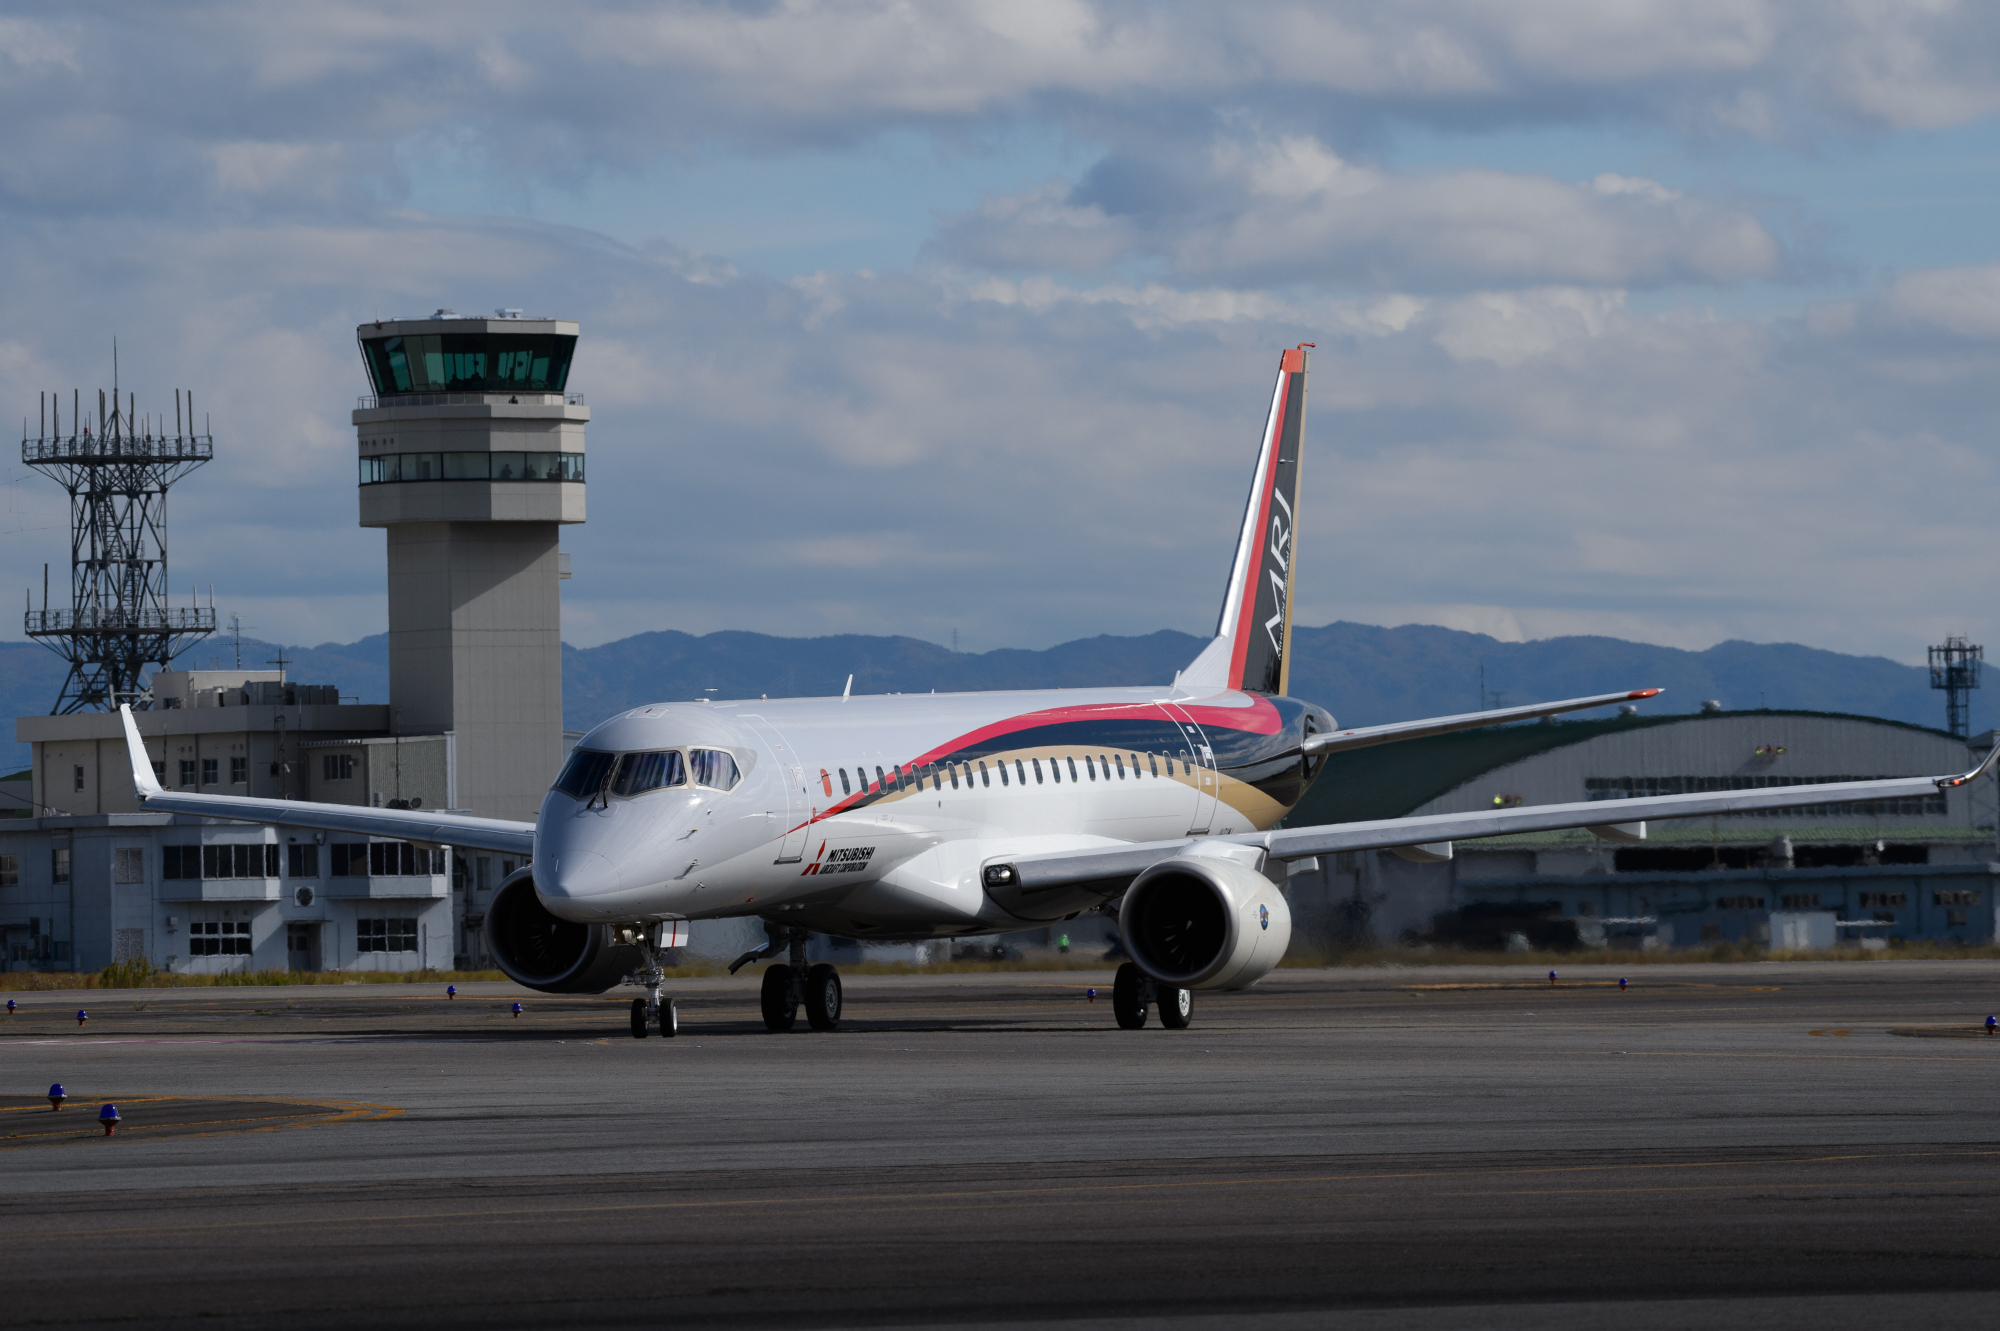 Mitsubishi Aircraft Corp. said its regional passenger jet has started safety test flights in the United States. | BLOOMBERG